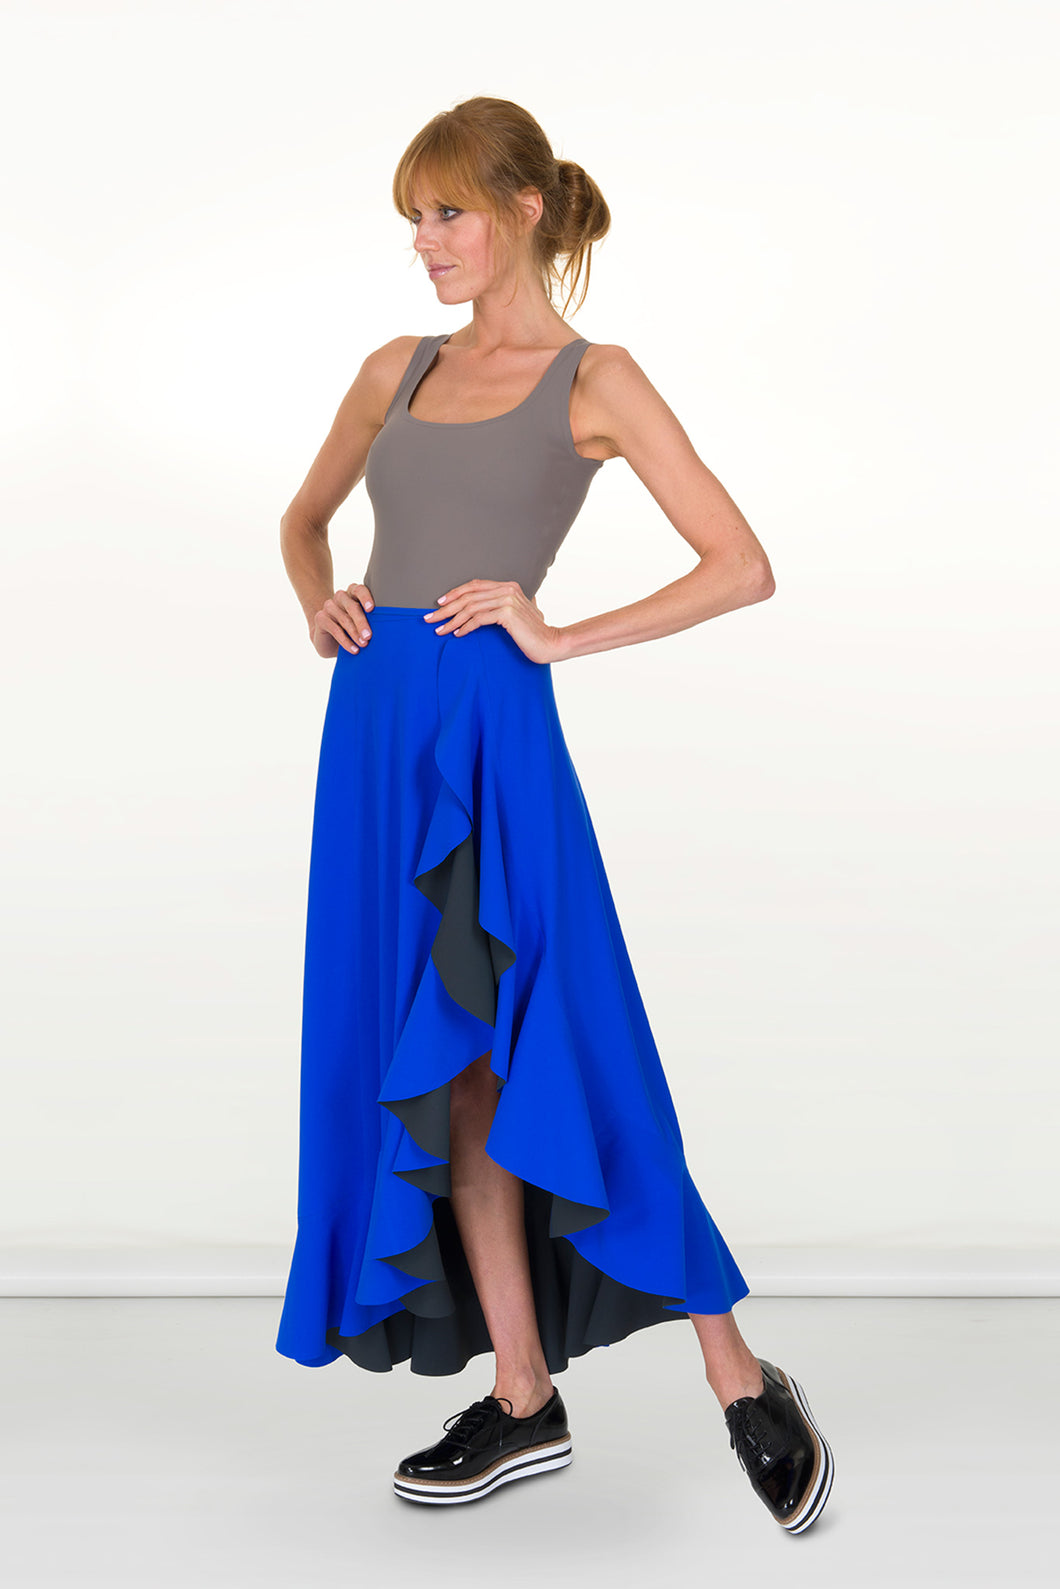 Stellaria Skirt Cape Dress